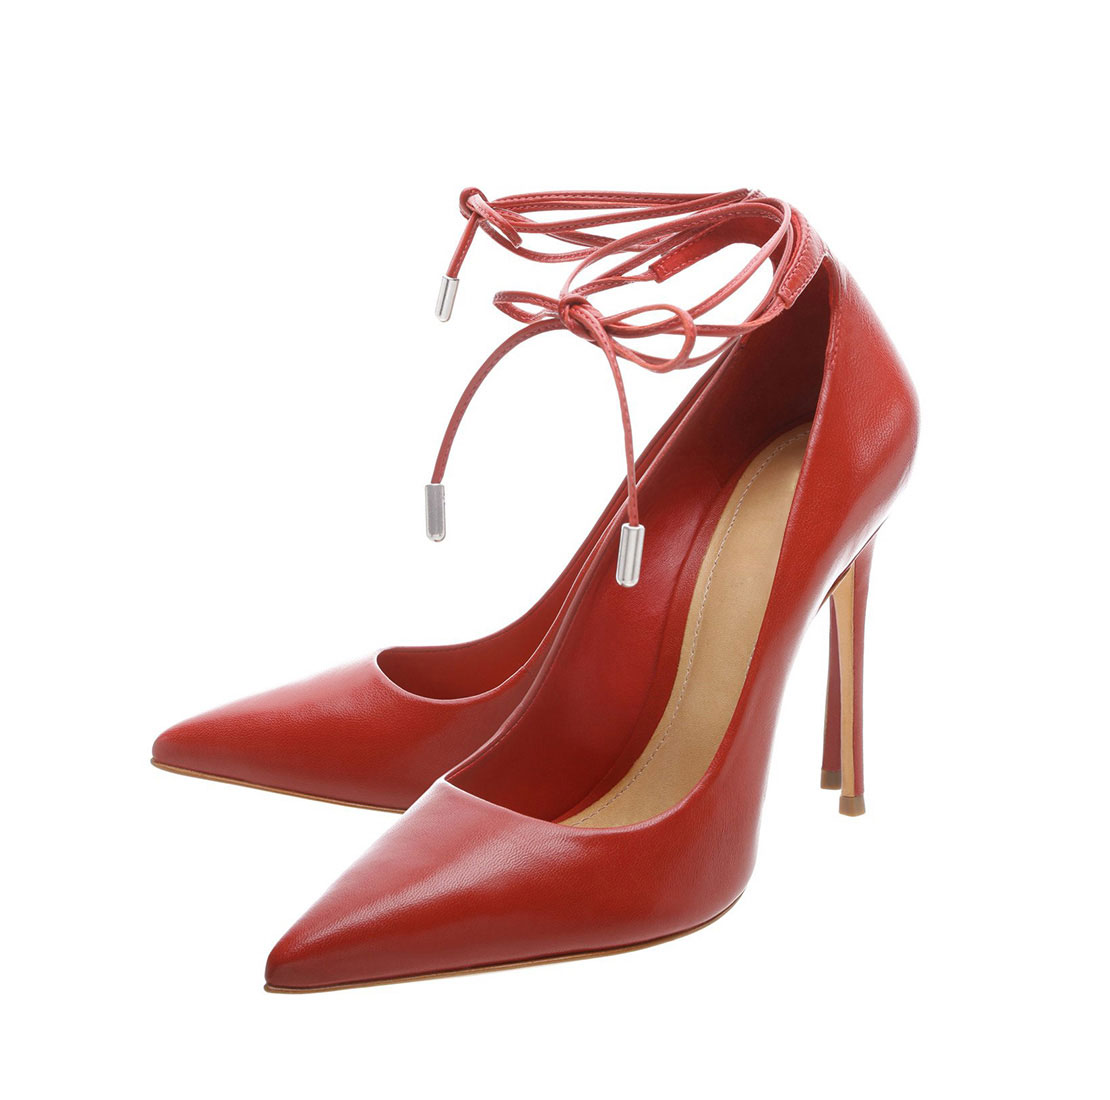 Wholesale china factory red high heel bow strap ladies dressy party shoes YB4020